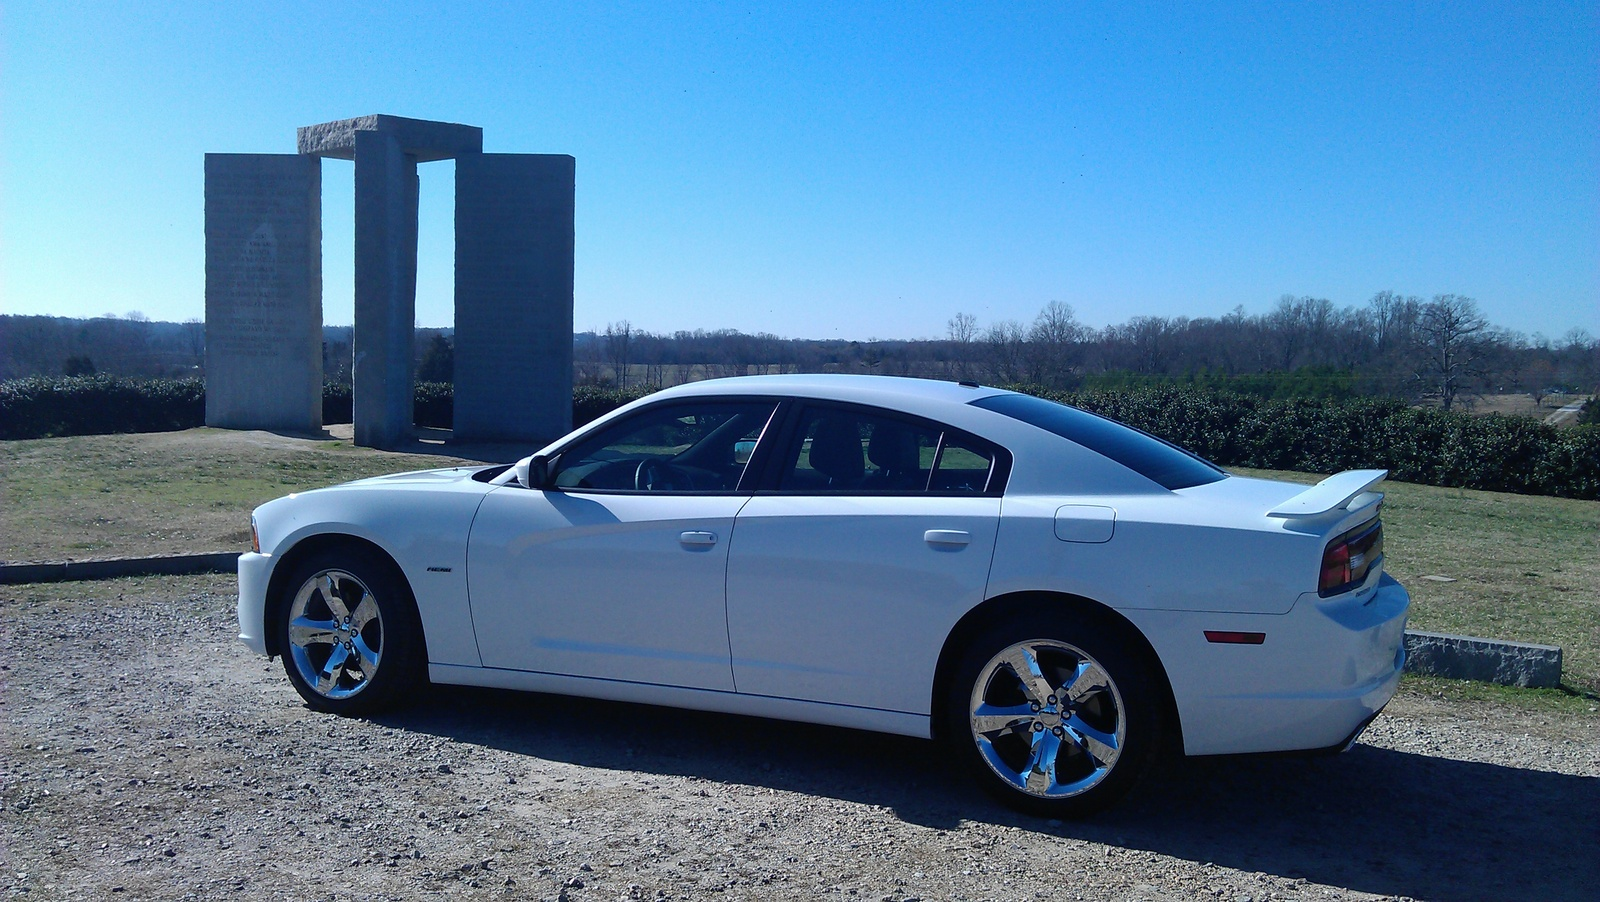 2011 dodge charger pictures cargurus. Cars Review. Best American Auto & Cars Review